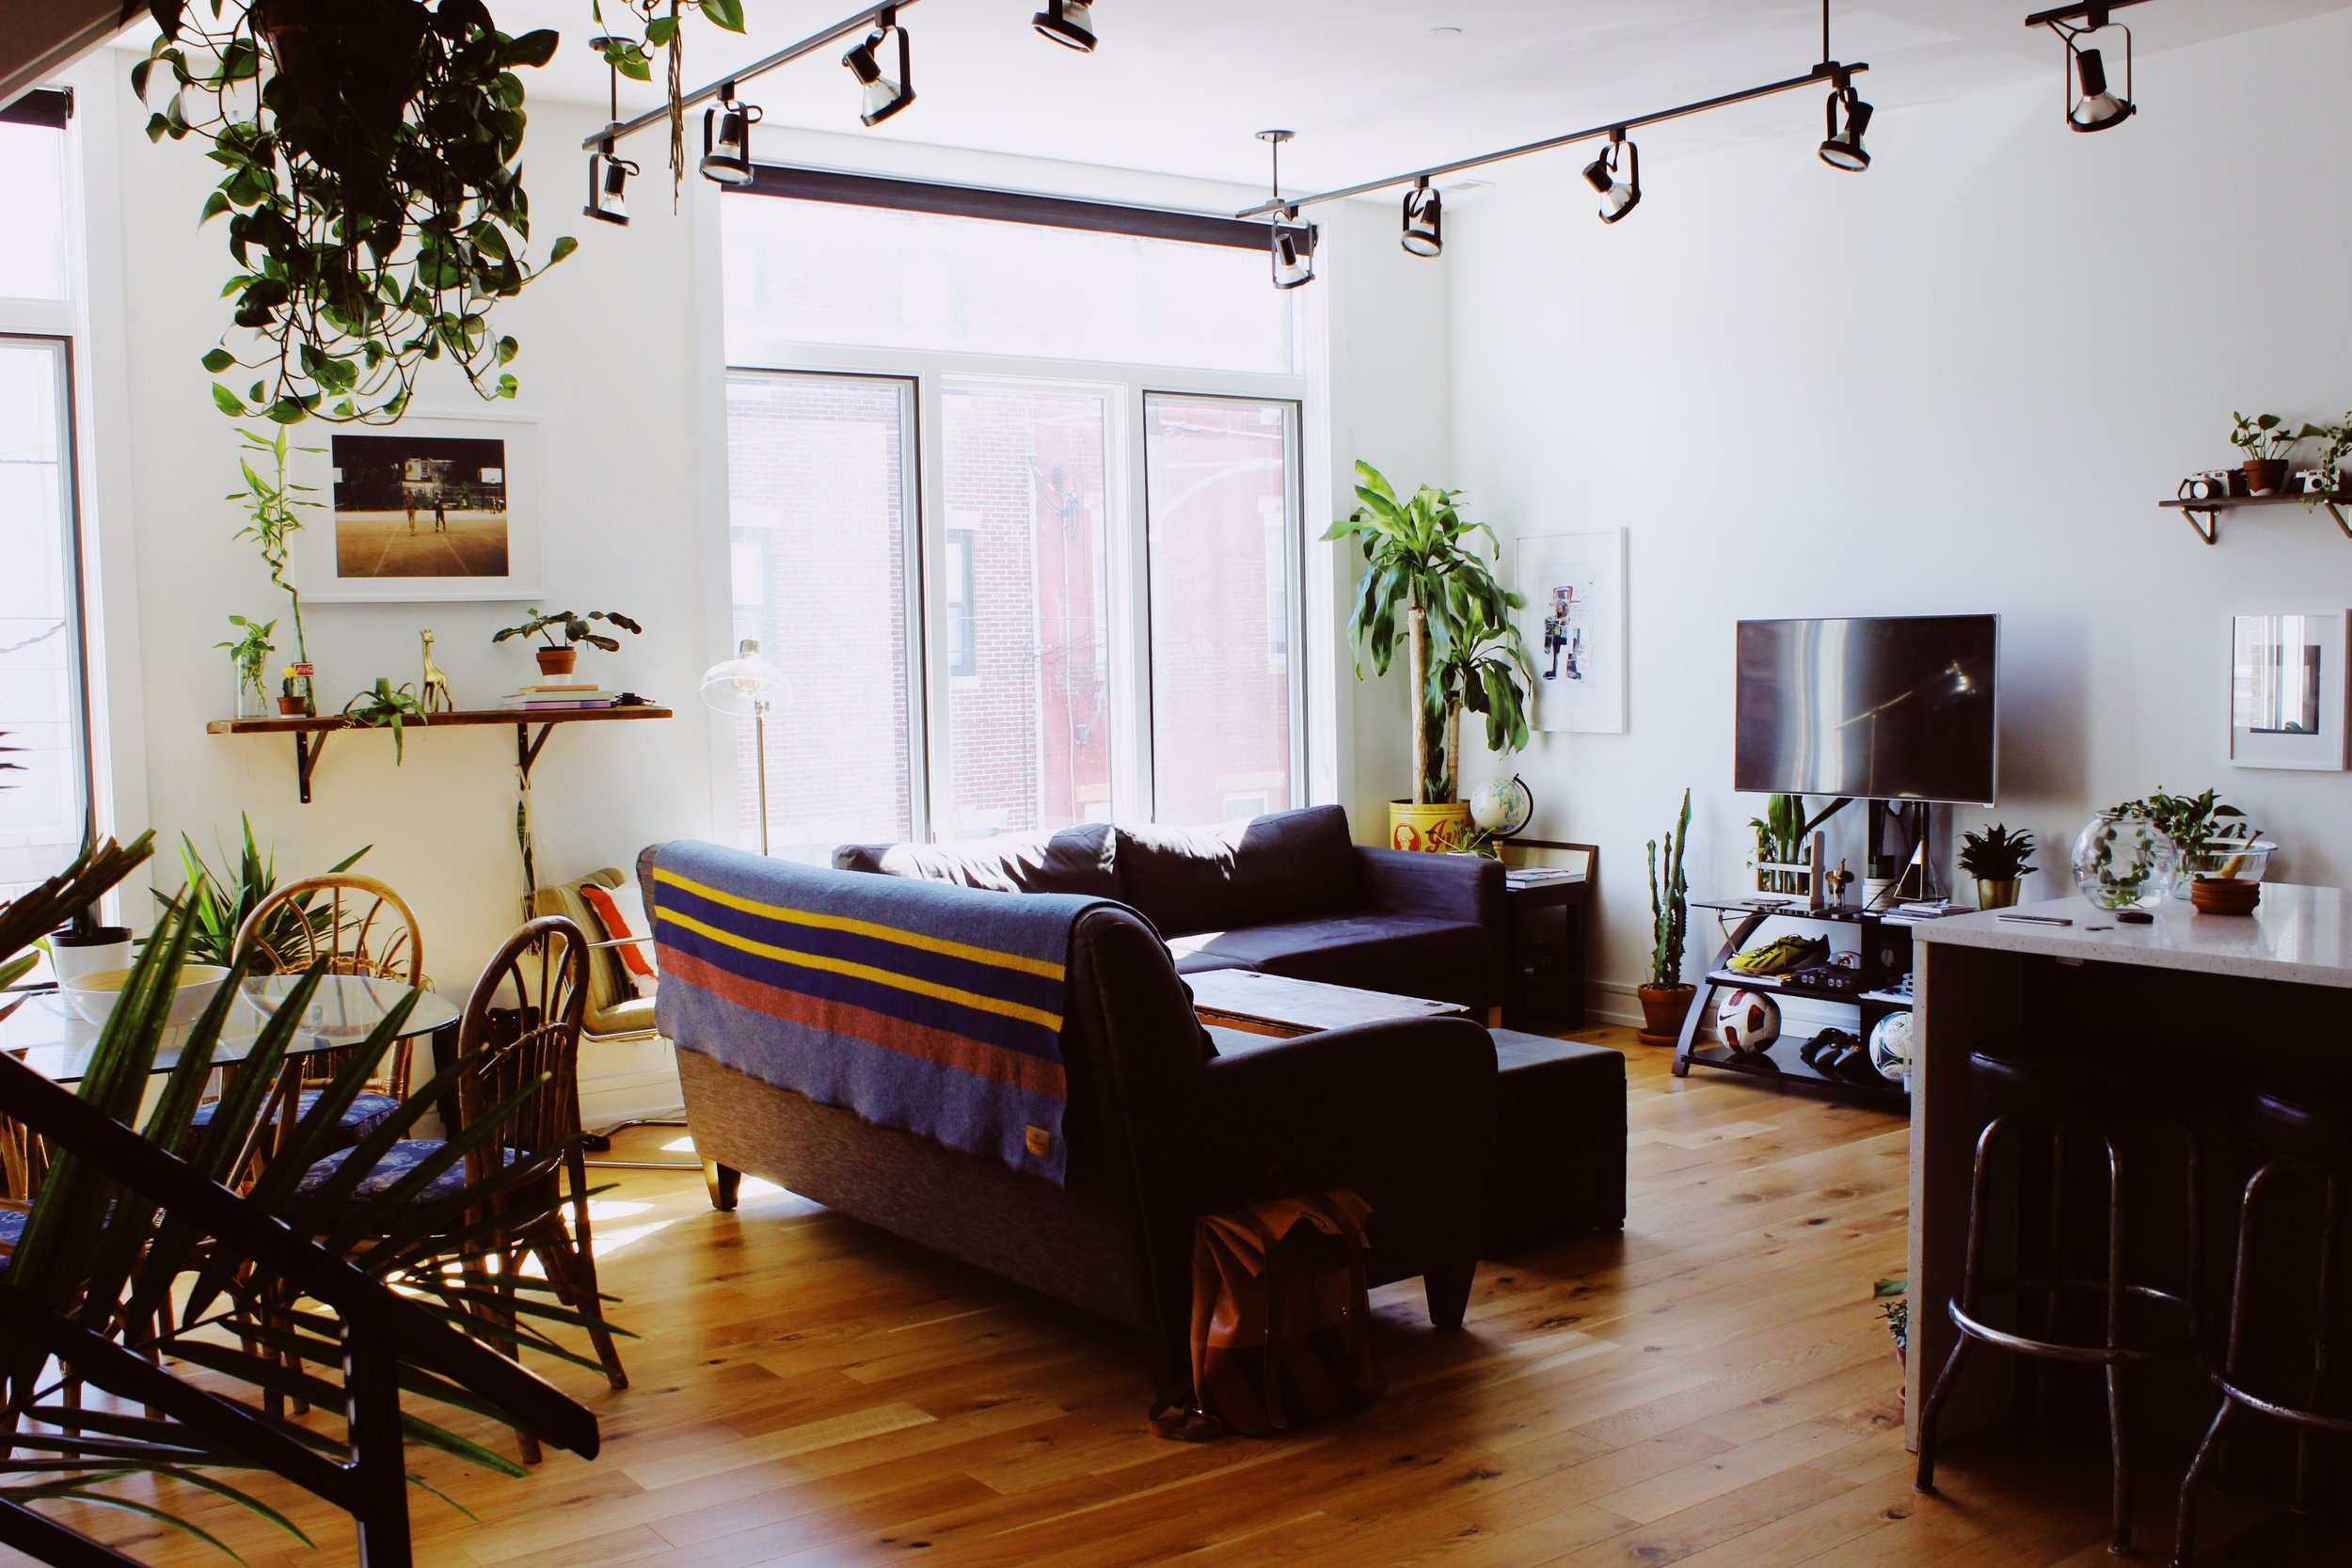 *Photo link leads to our Airbnb listing here in Philadelphia. Dreaming big for this small business of ours ♥